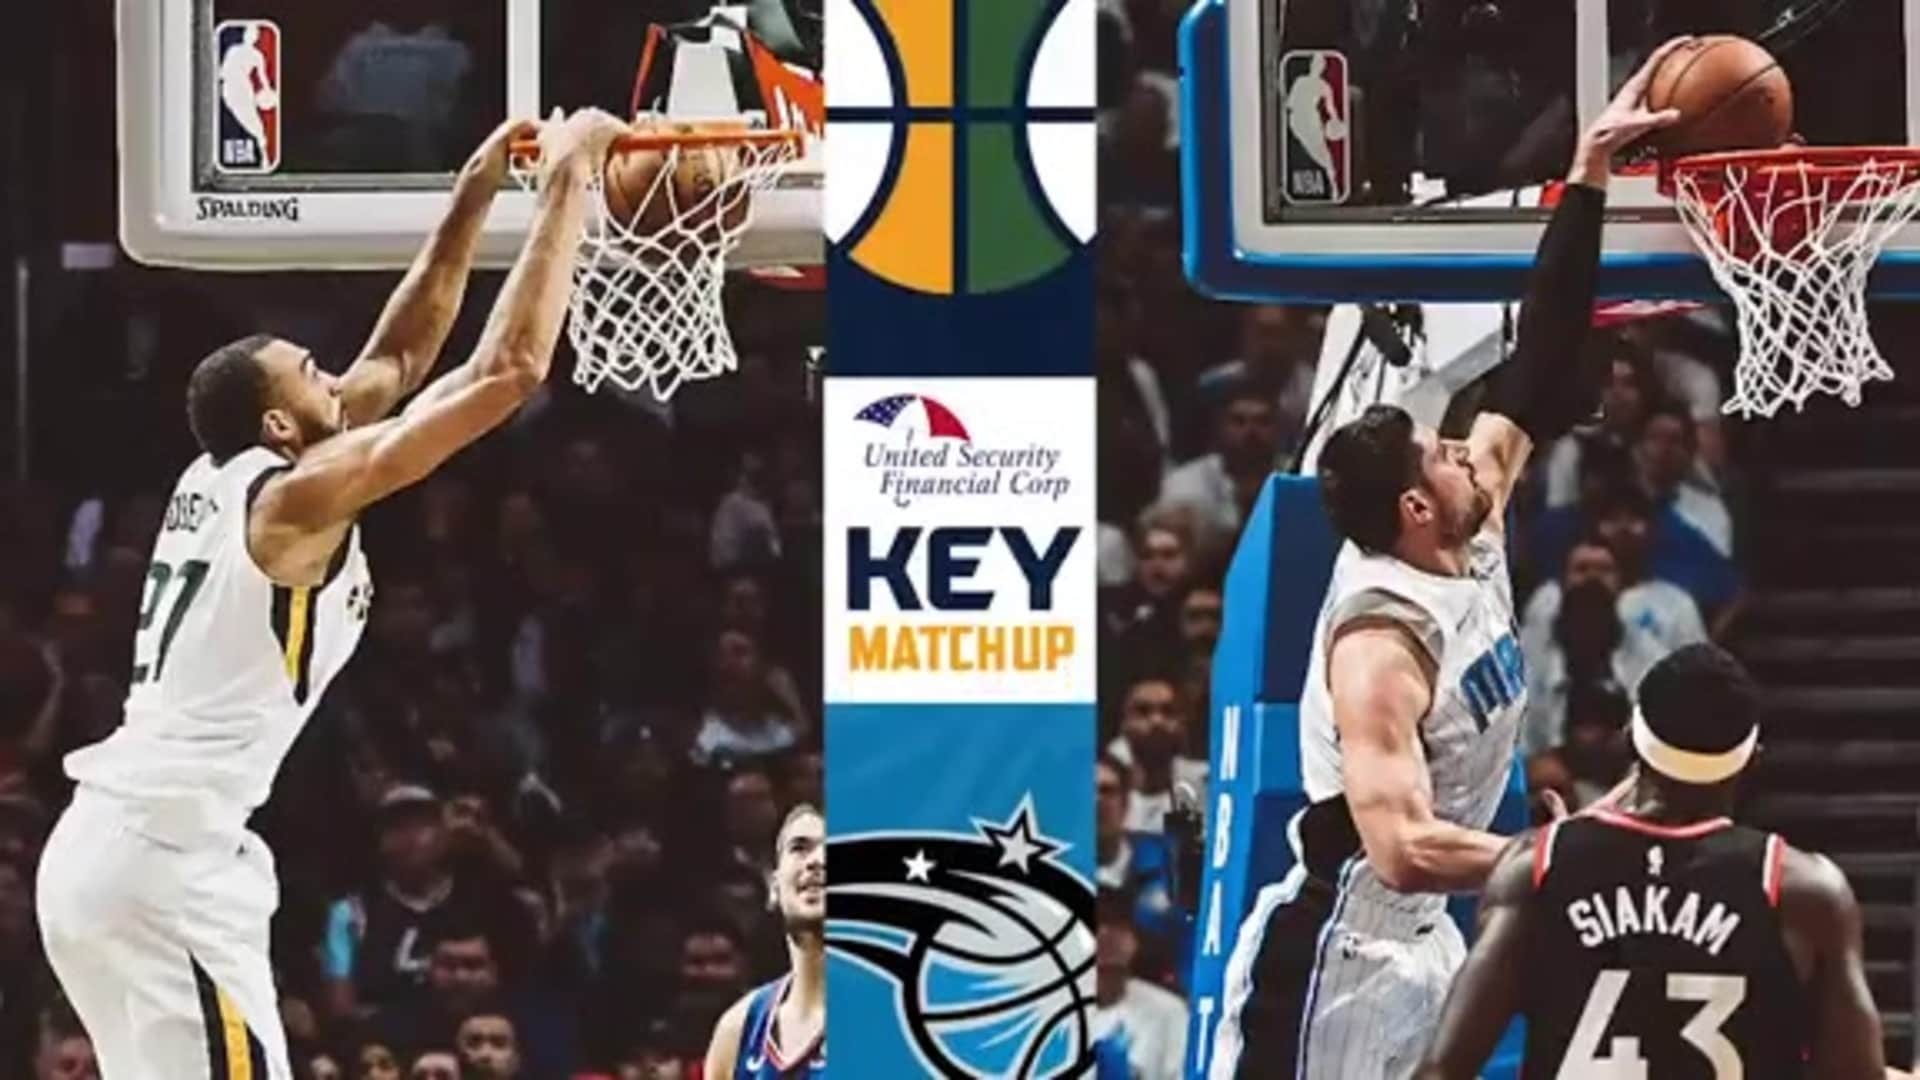 Key Matchup: Rudy Gobert vs. Nikola Vucevic